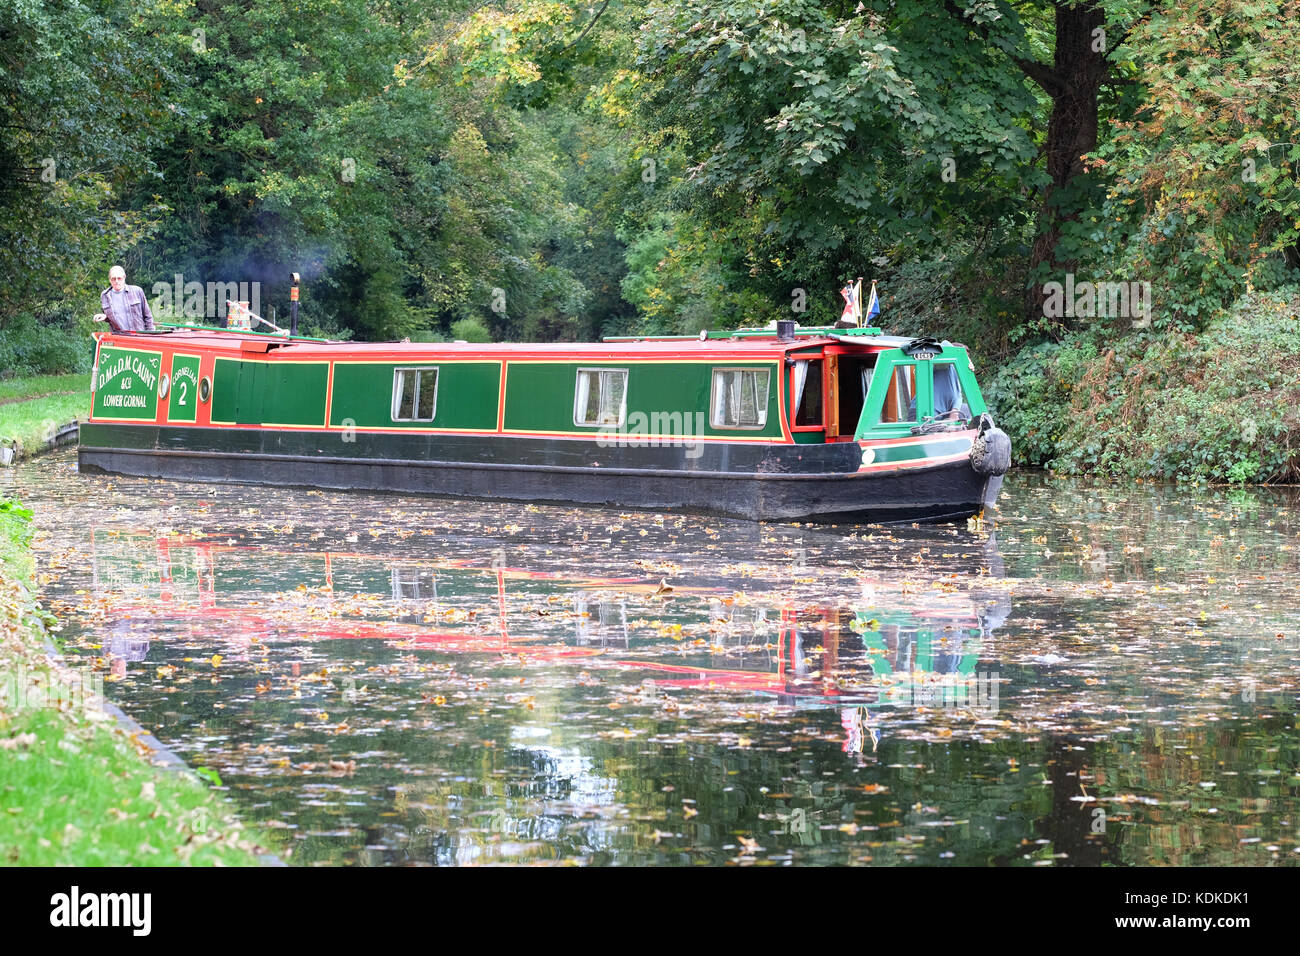 Stourton Junction, Stewponey, Stourton, West Midlands, UK. 14th October, 2017. Autumn weather as a canal boat passes Stock Photo